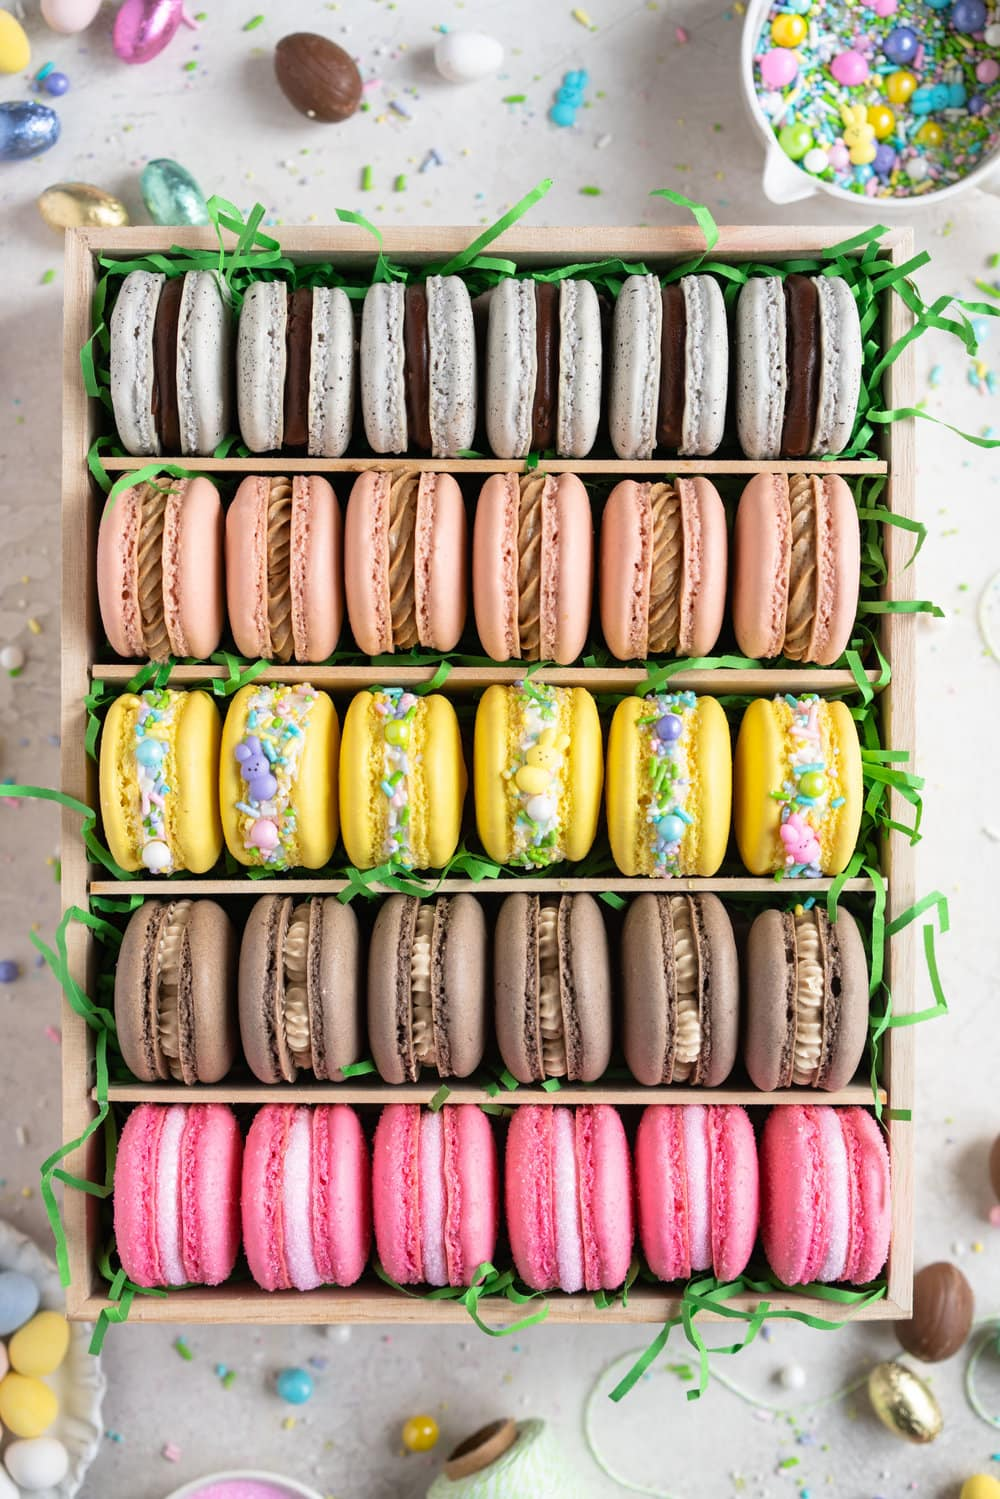 The ultimate Easter Macaron Box - creme egg macarons, hot cross bun macarons, coconut macarons, chocolate peanut butter macarons and peeps marshmallow macarons make up the most amazing Easter inspired box. This would make an incredible easter gift, and can be customised however you like!